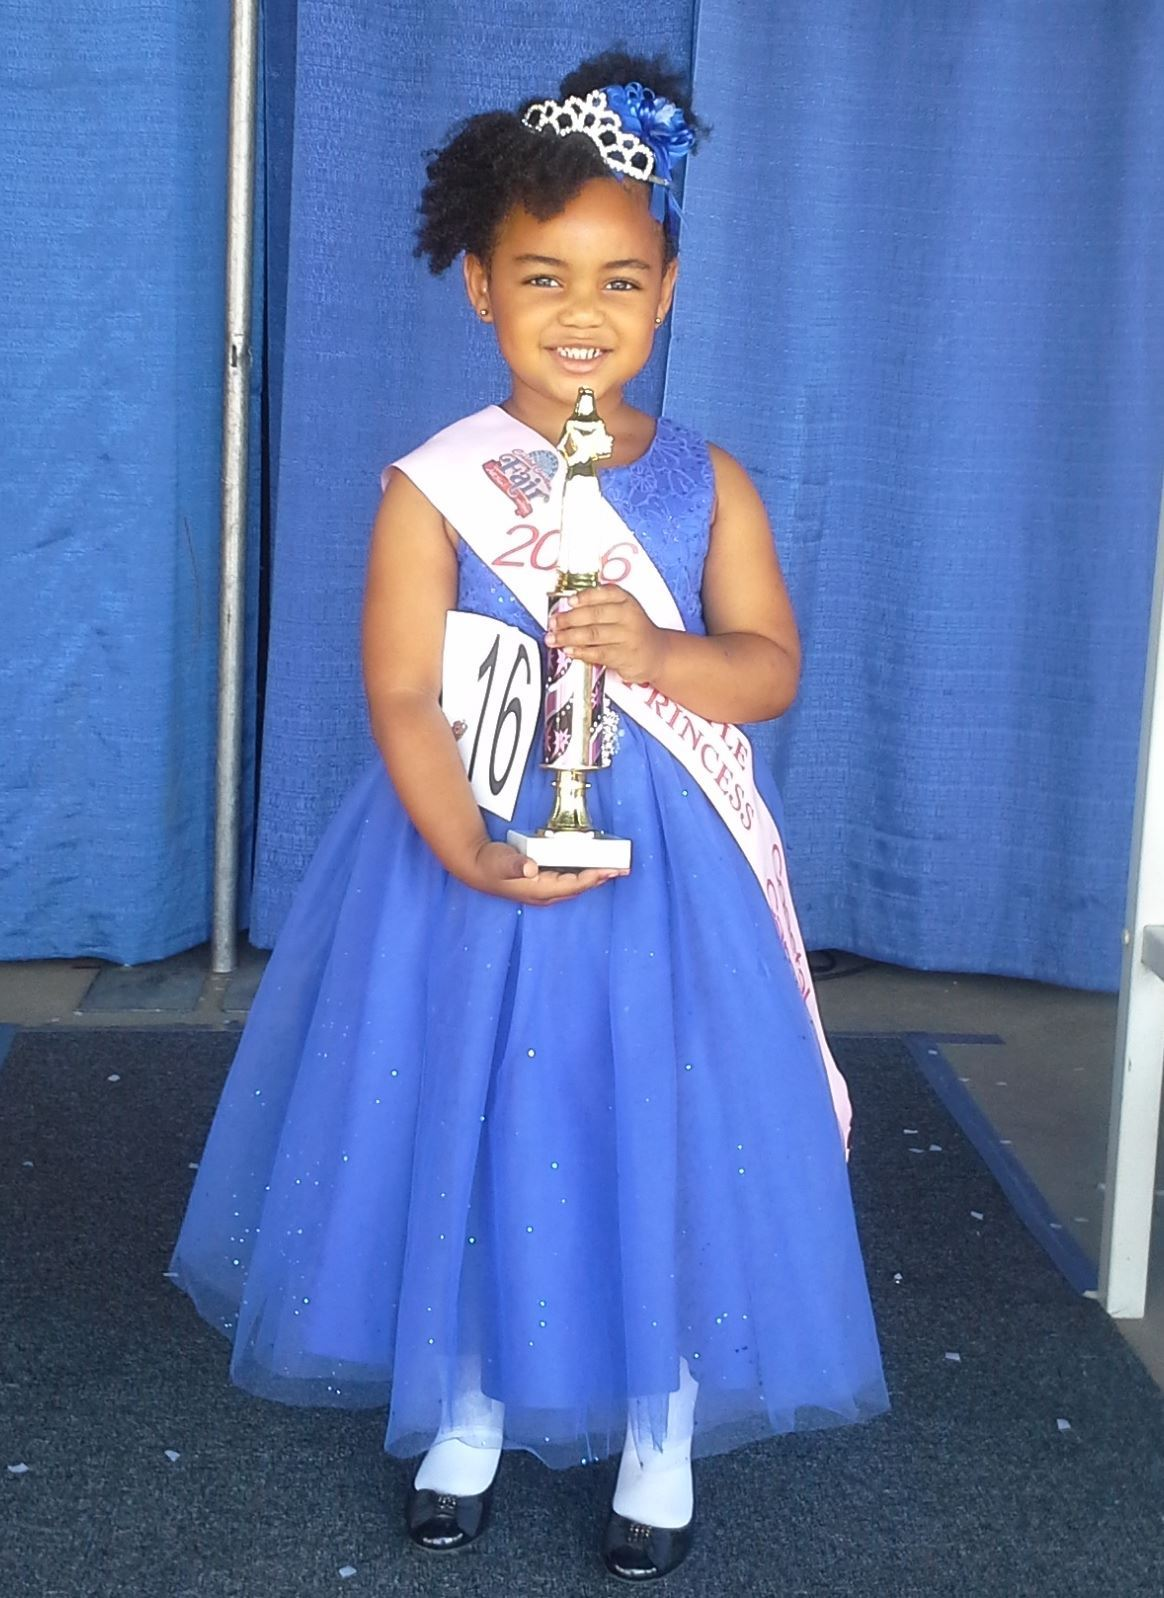 Little Princess Winner 2013